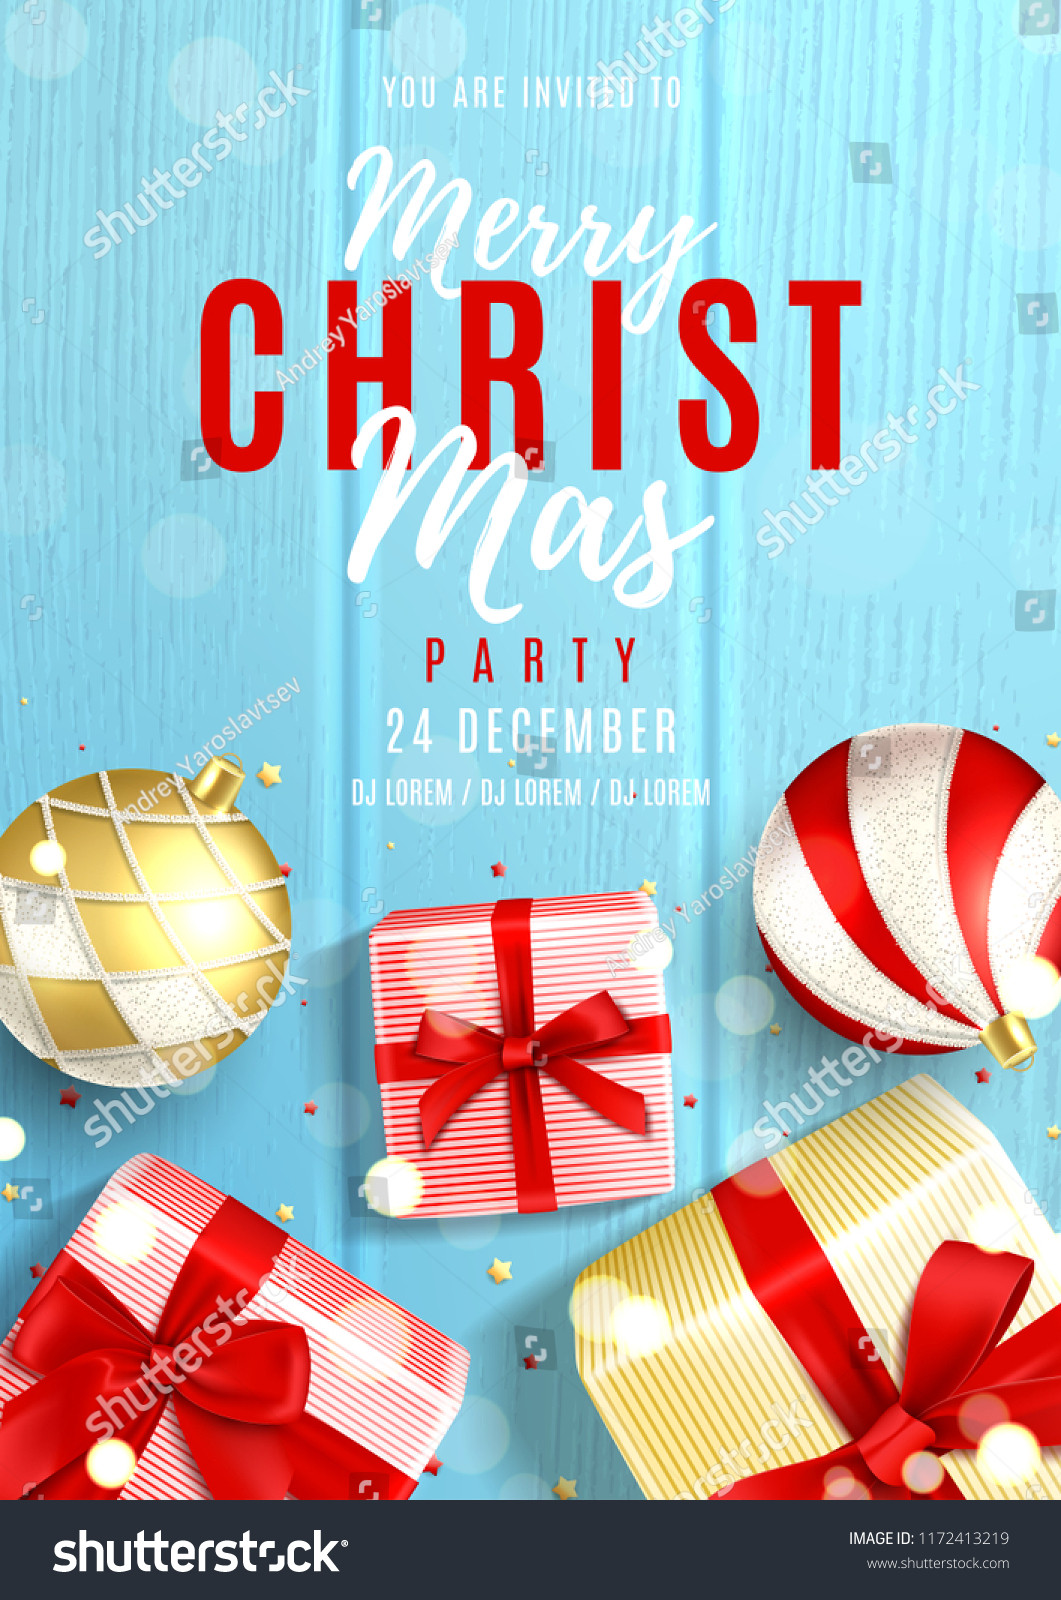 Christmas Party Invite Template